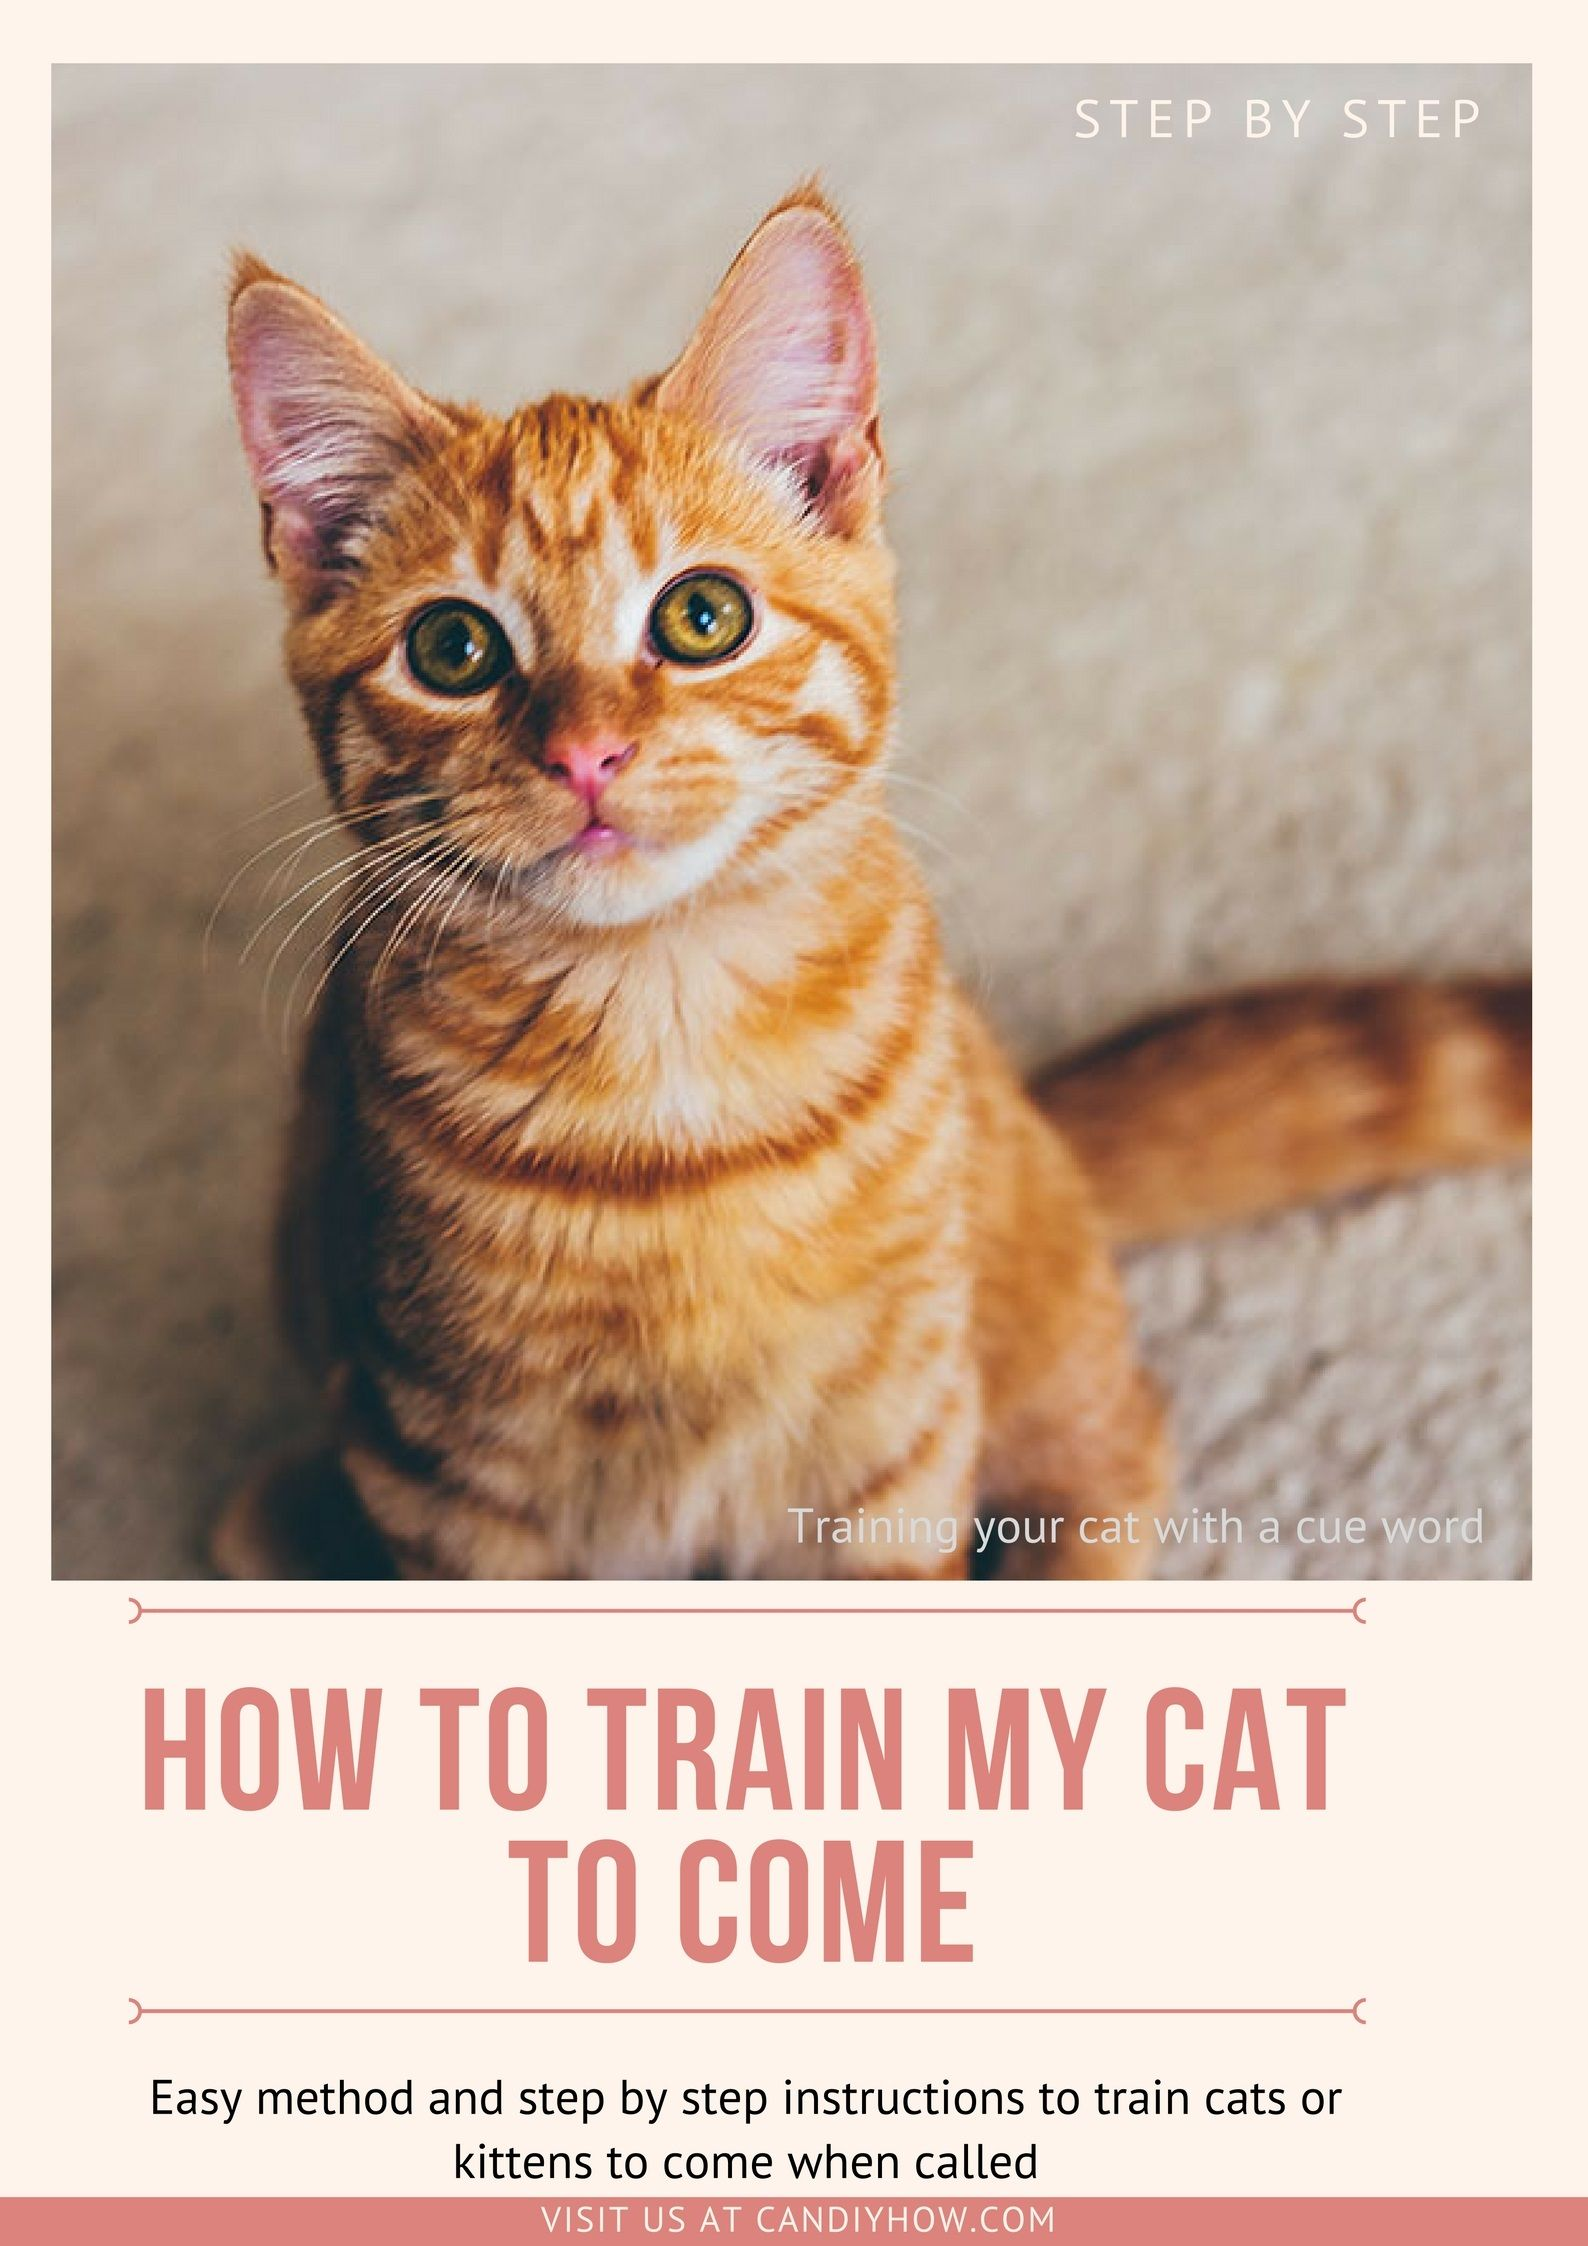 How To Use Cue Word N Treats Training My Cat To Come When Called Training Pets With Command Animal Training Cats Cat Training Pet Training